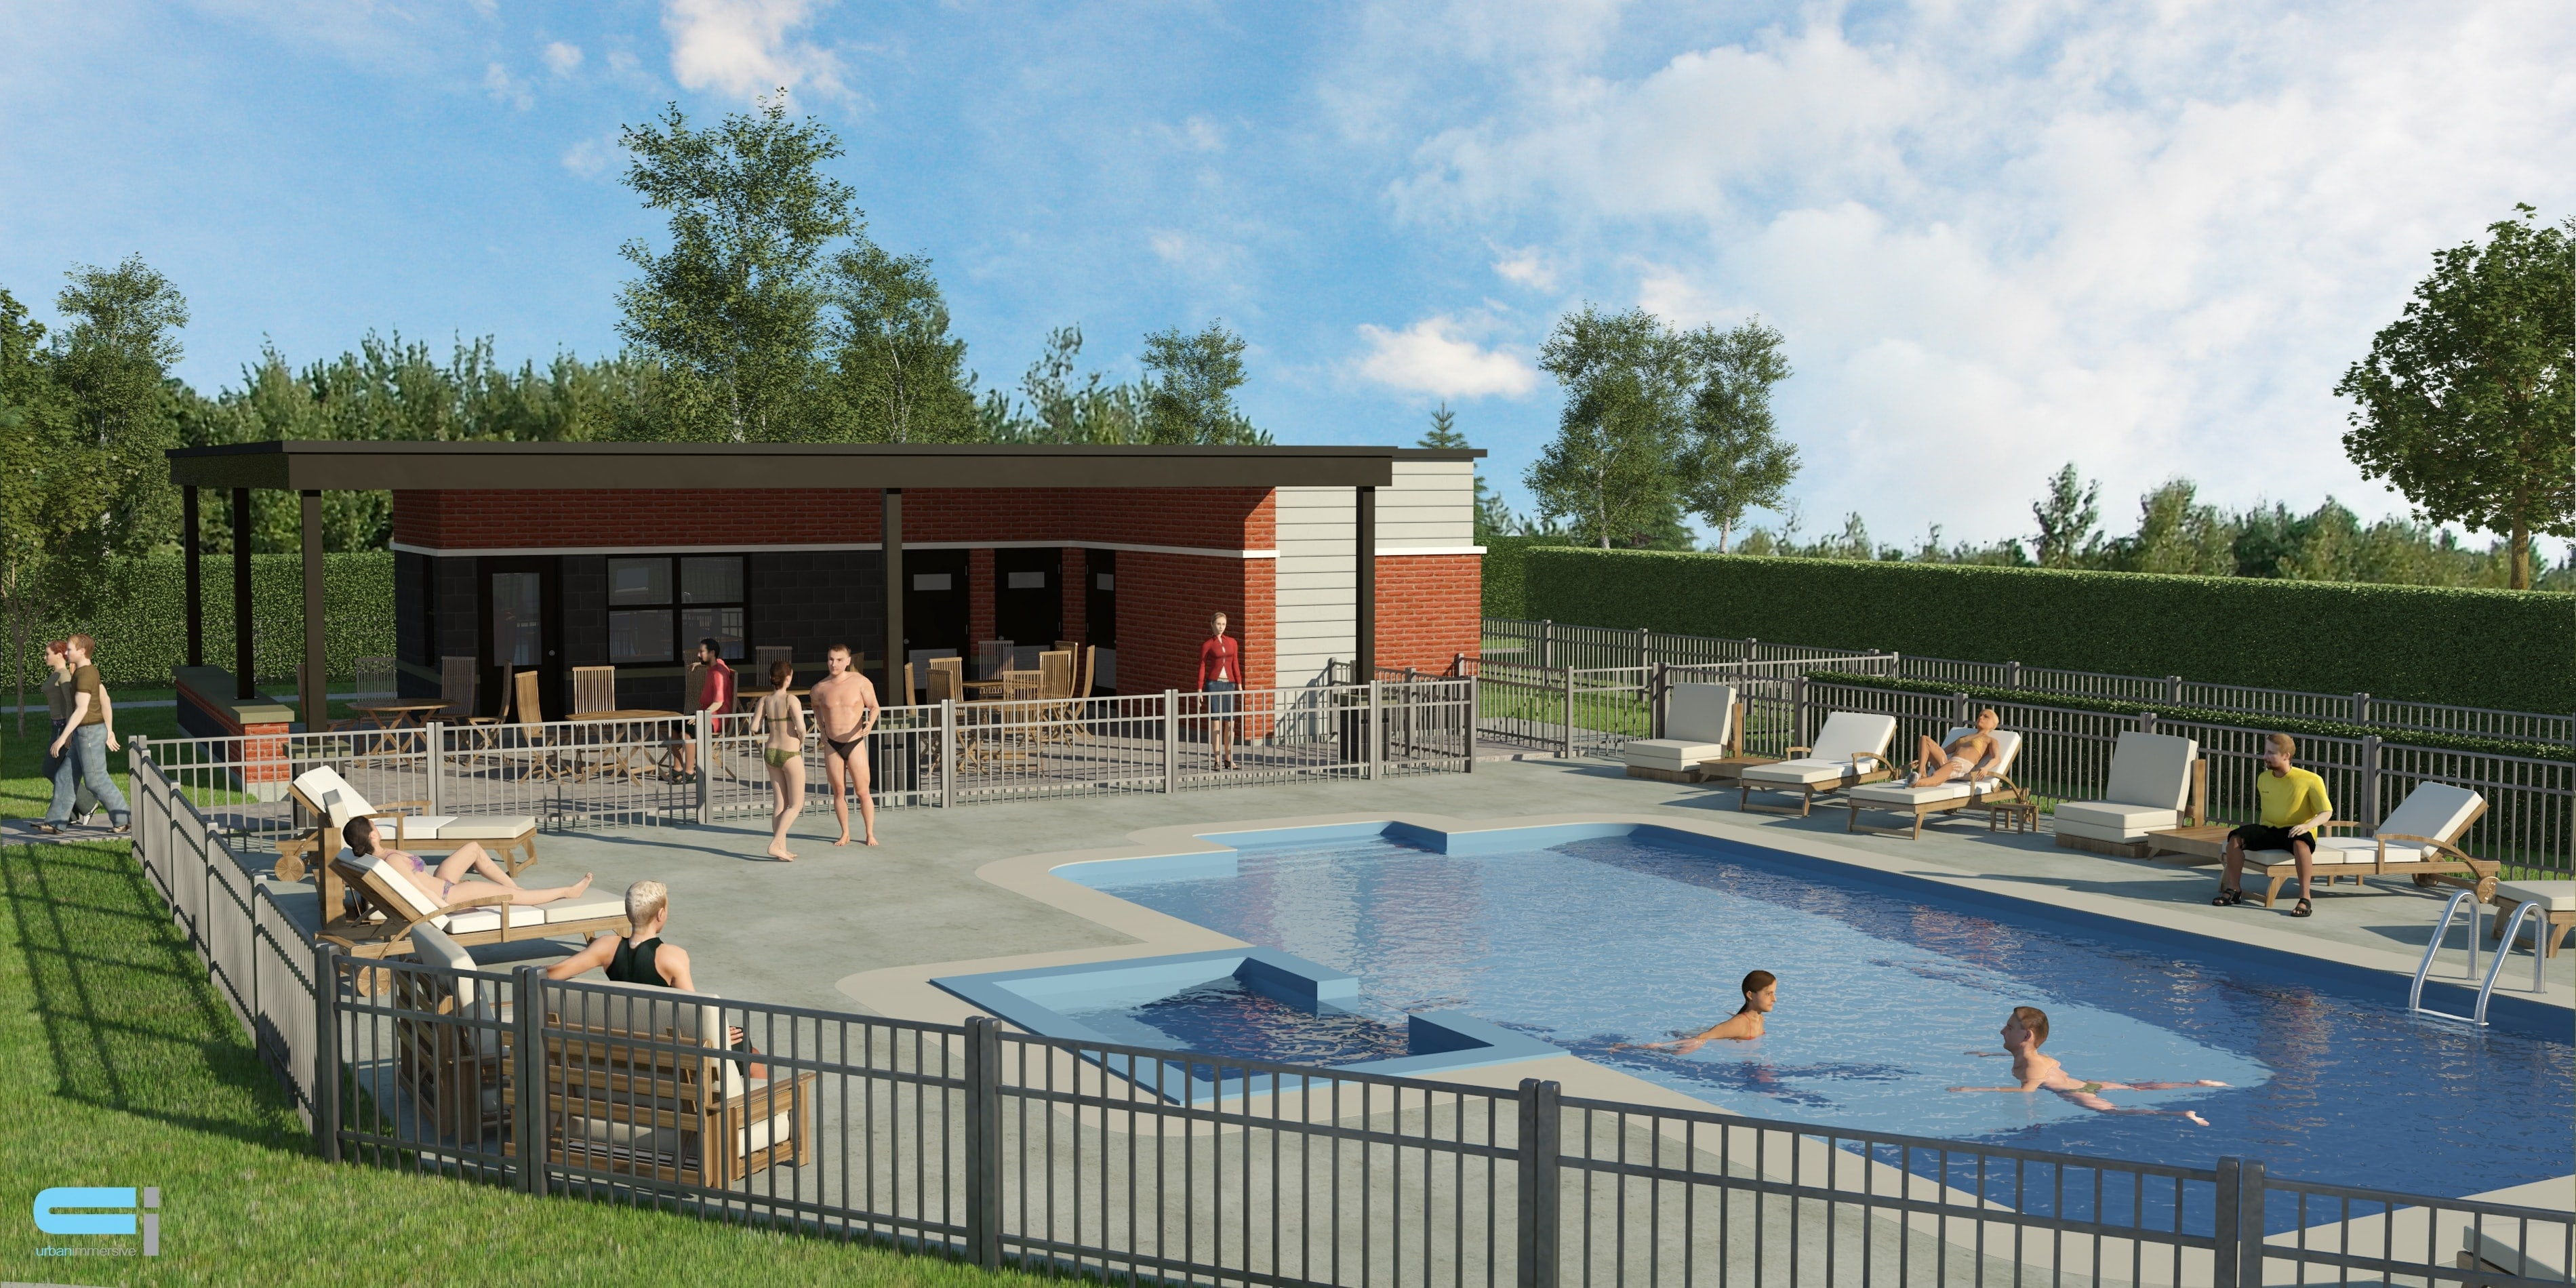 Projet square jean beraud phase e m trocit laval for Club piscine plus cppq laval